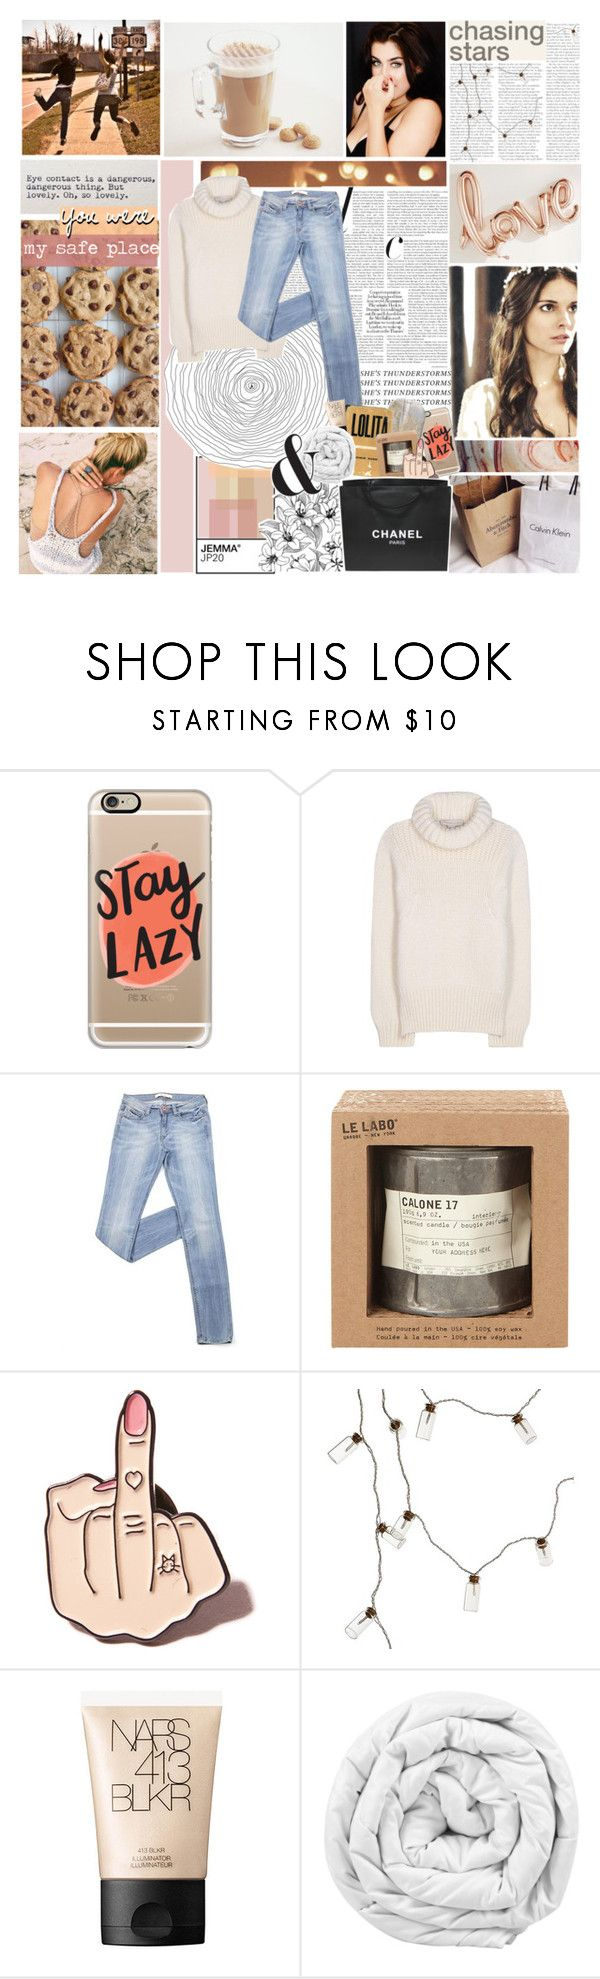 """❝Fight For Yourself"" by h-eartstrings ❤ liked on Polyvore featuring PAM, Master-Piece, Expresso, Casetify, STELLA McCARTNEY, Le Labo, Local Heroes, Klar, NARS Cosmetics and Brinkhaus"